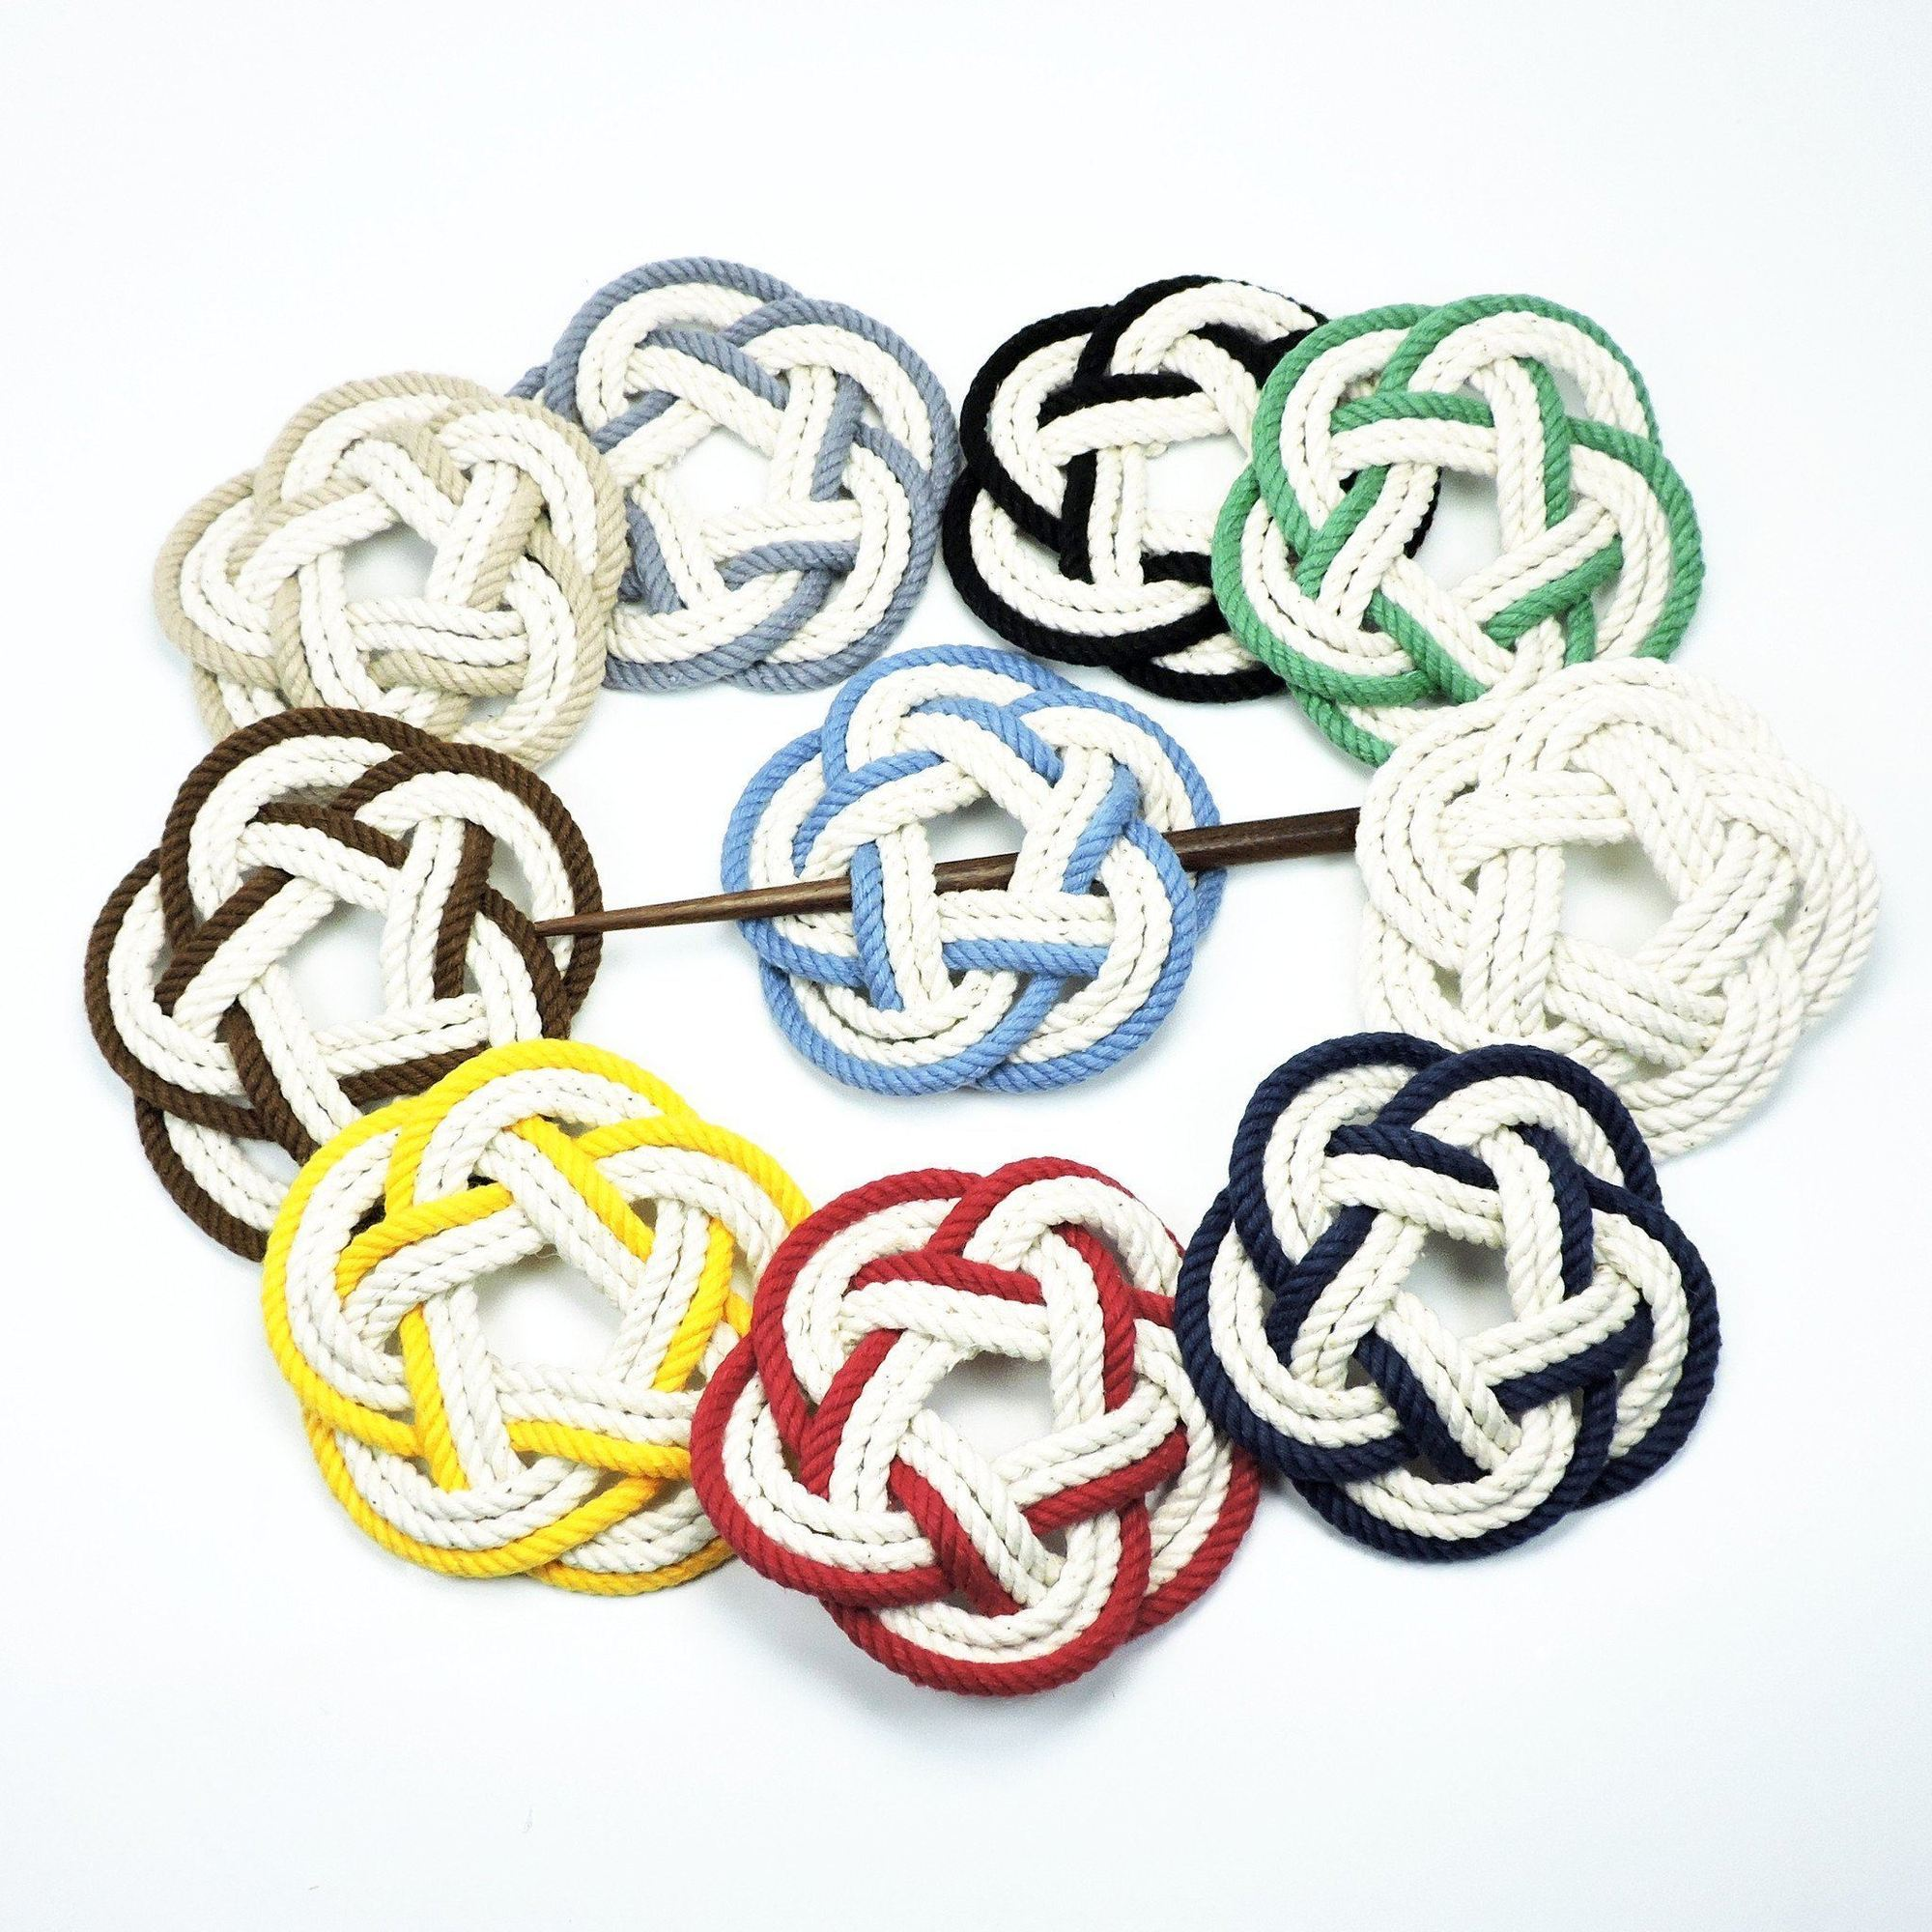 Nautical Sailor Knot Hair Stick Barrette, 17 Color Choices Handmade sailor knot American Made in Mystic, CT $ 8.00